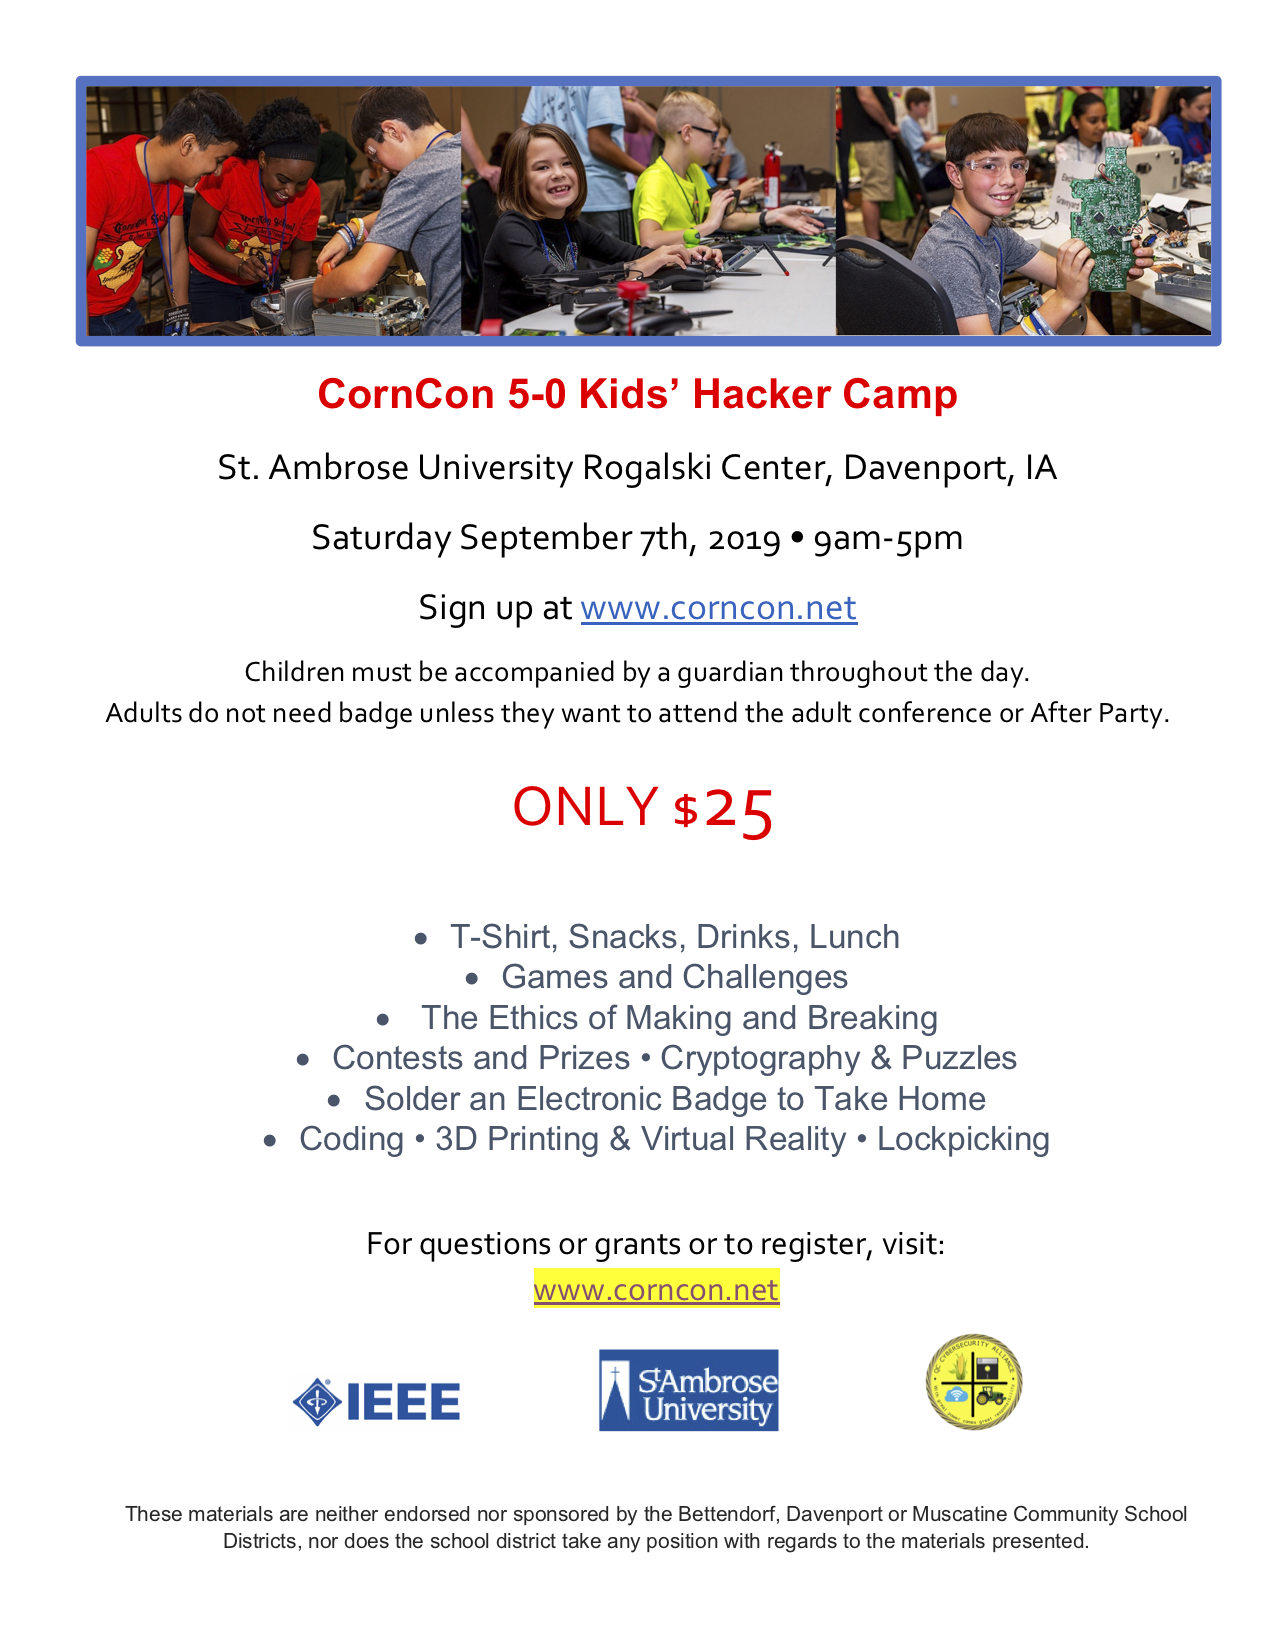 CornCon 5-0 Kids' Hacker Camp - Muscatine Community School District